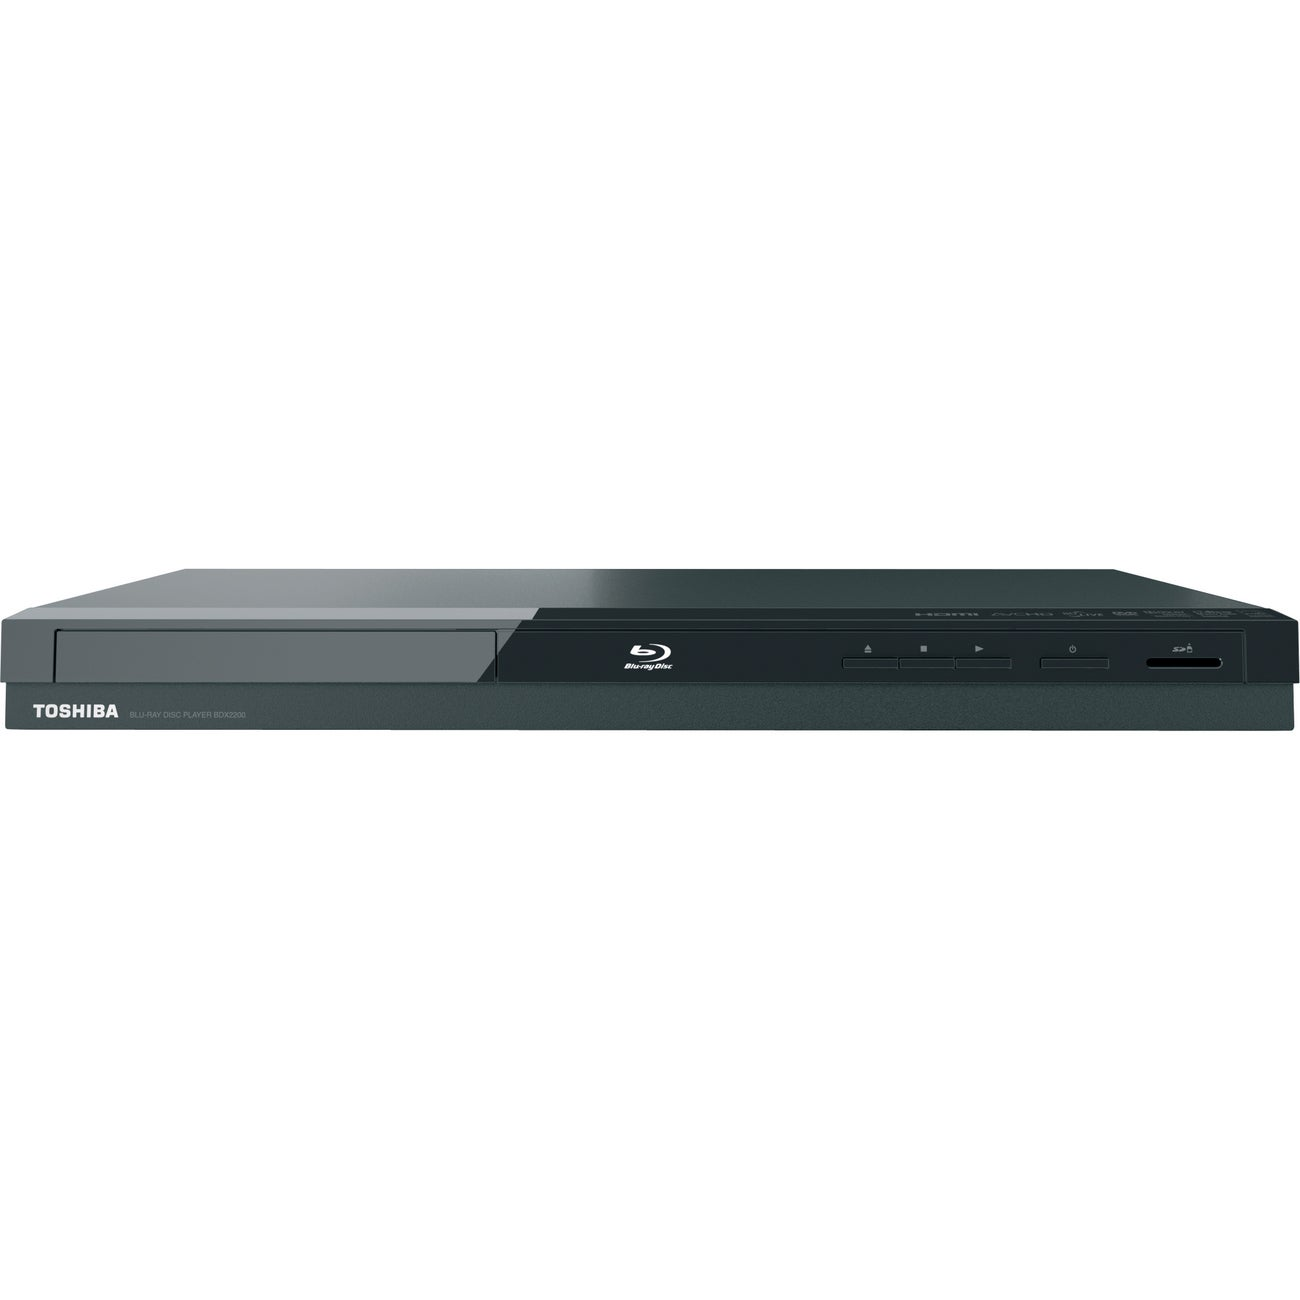 Toshiba BDX2200 Blu-ray Disc Player - 1080p